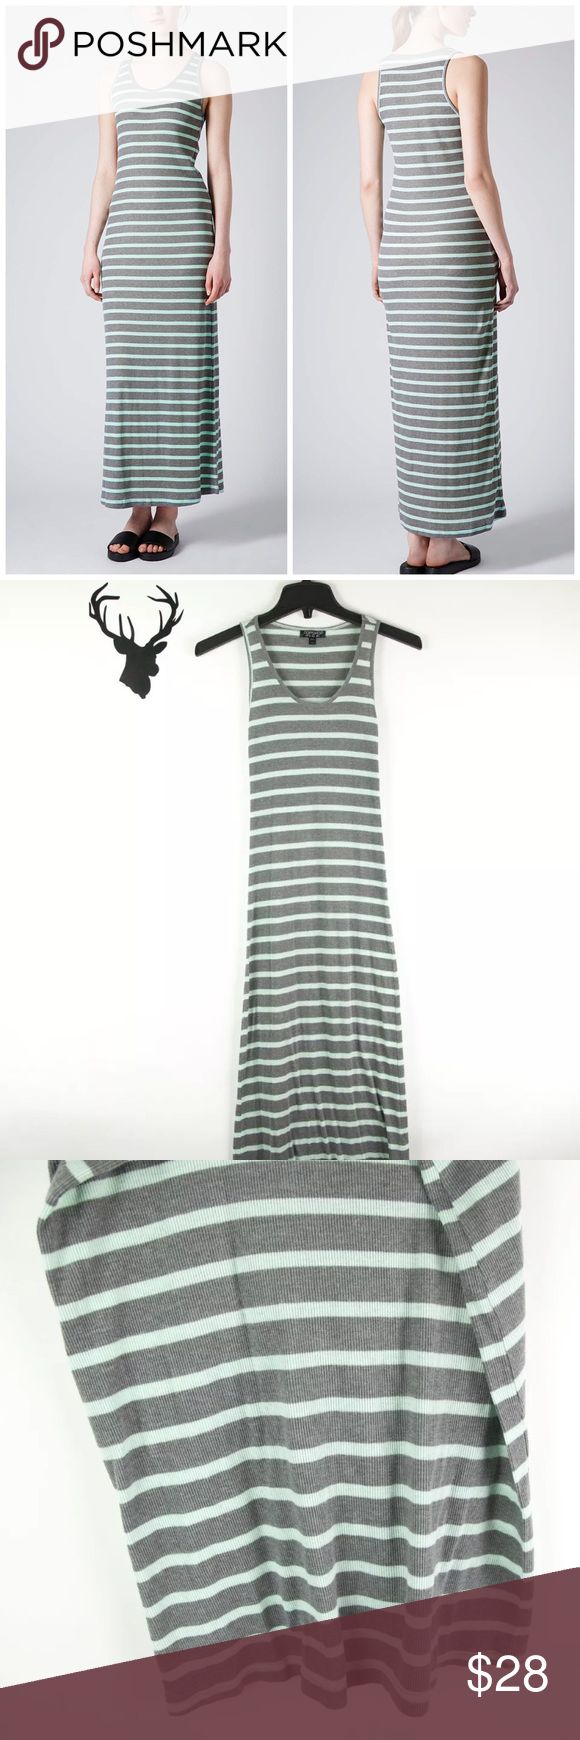 """Topshop Mint & Gray Striped Ribber Maxi Dress TOPSHOP Stripe Ribbed Maxi Dress in mint & gray Casual. US Size 0. Perfect casual summer dress! Excellent pre-loved condition!  All measurements taken laying flat Approx. 12"""" armpit to armpit Approx. 50"""" L from shoulder seam to hem  🚫no trades 🚫no modeling ✅dog friendly/🚭smoke free home ✅reasonable offers ✅bundle & save! Topshop Dresses Maxi"""